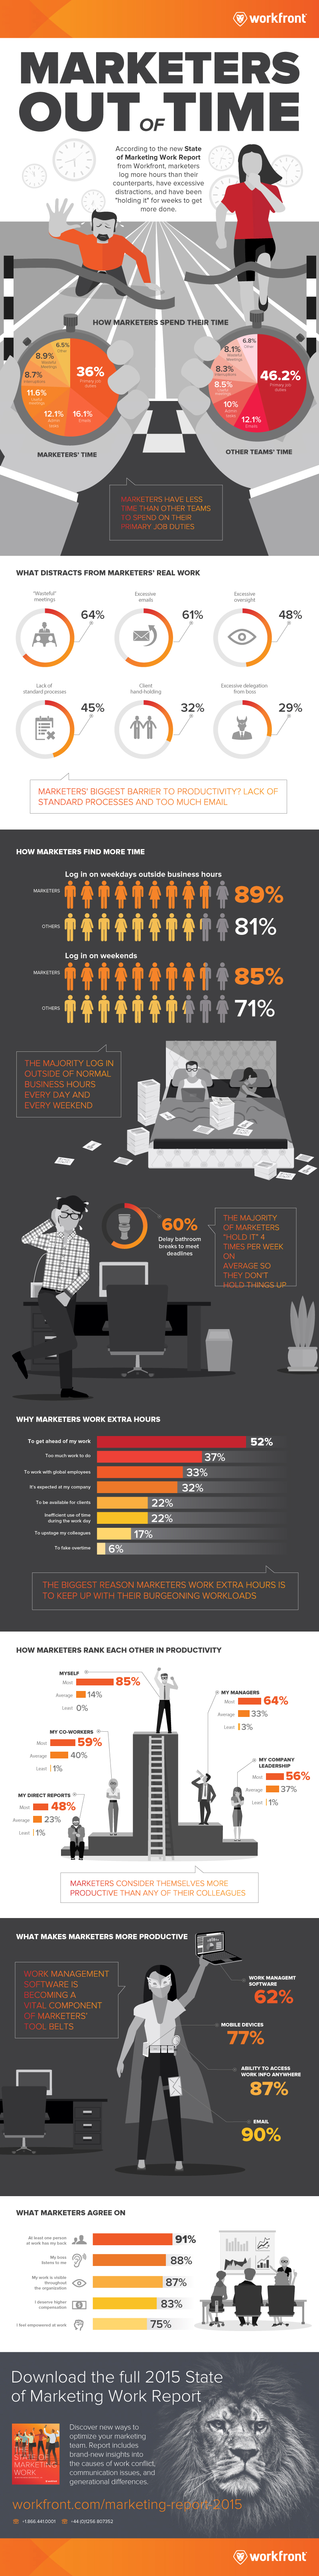 Infografik: The State of Marketing Work Management 2015 - Was machen Marketer den ganzen Tag